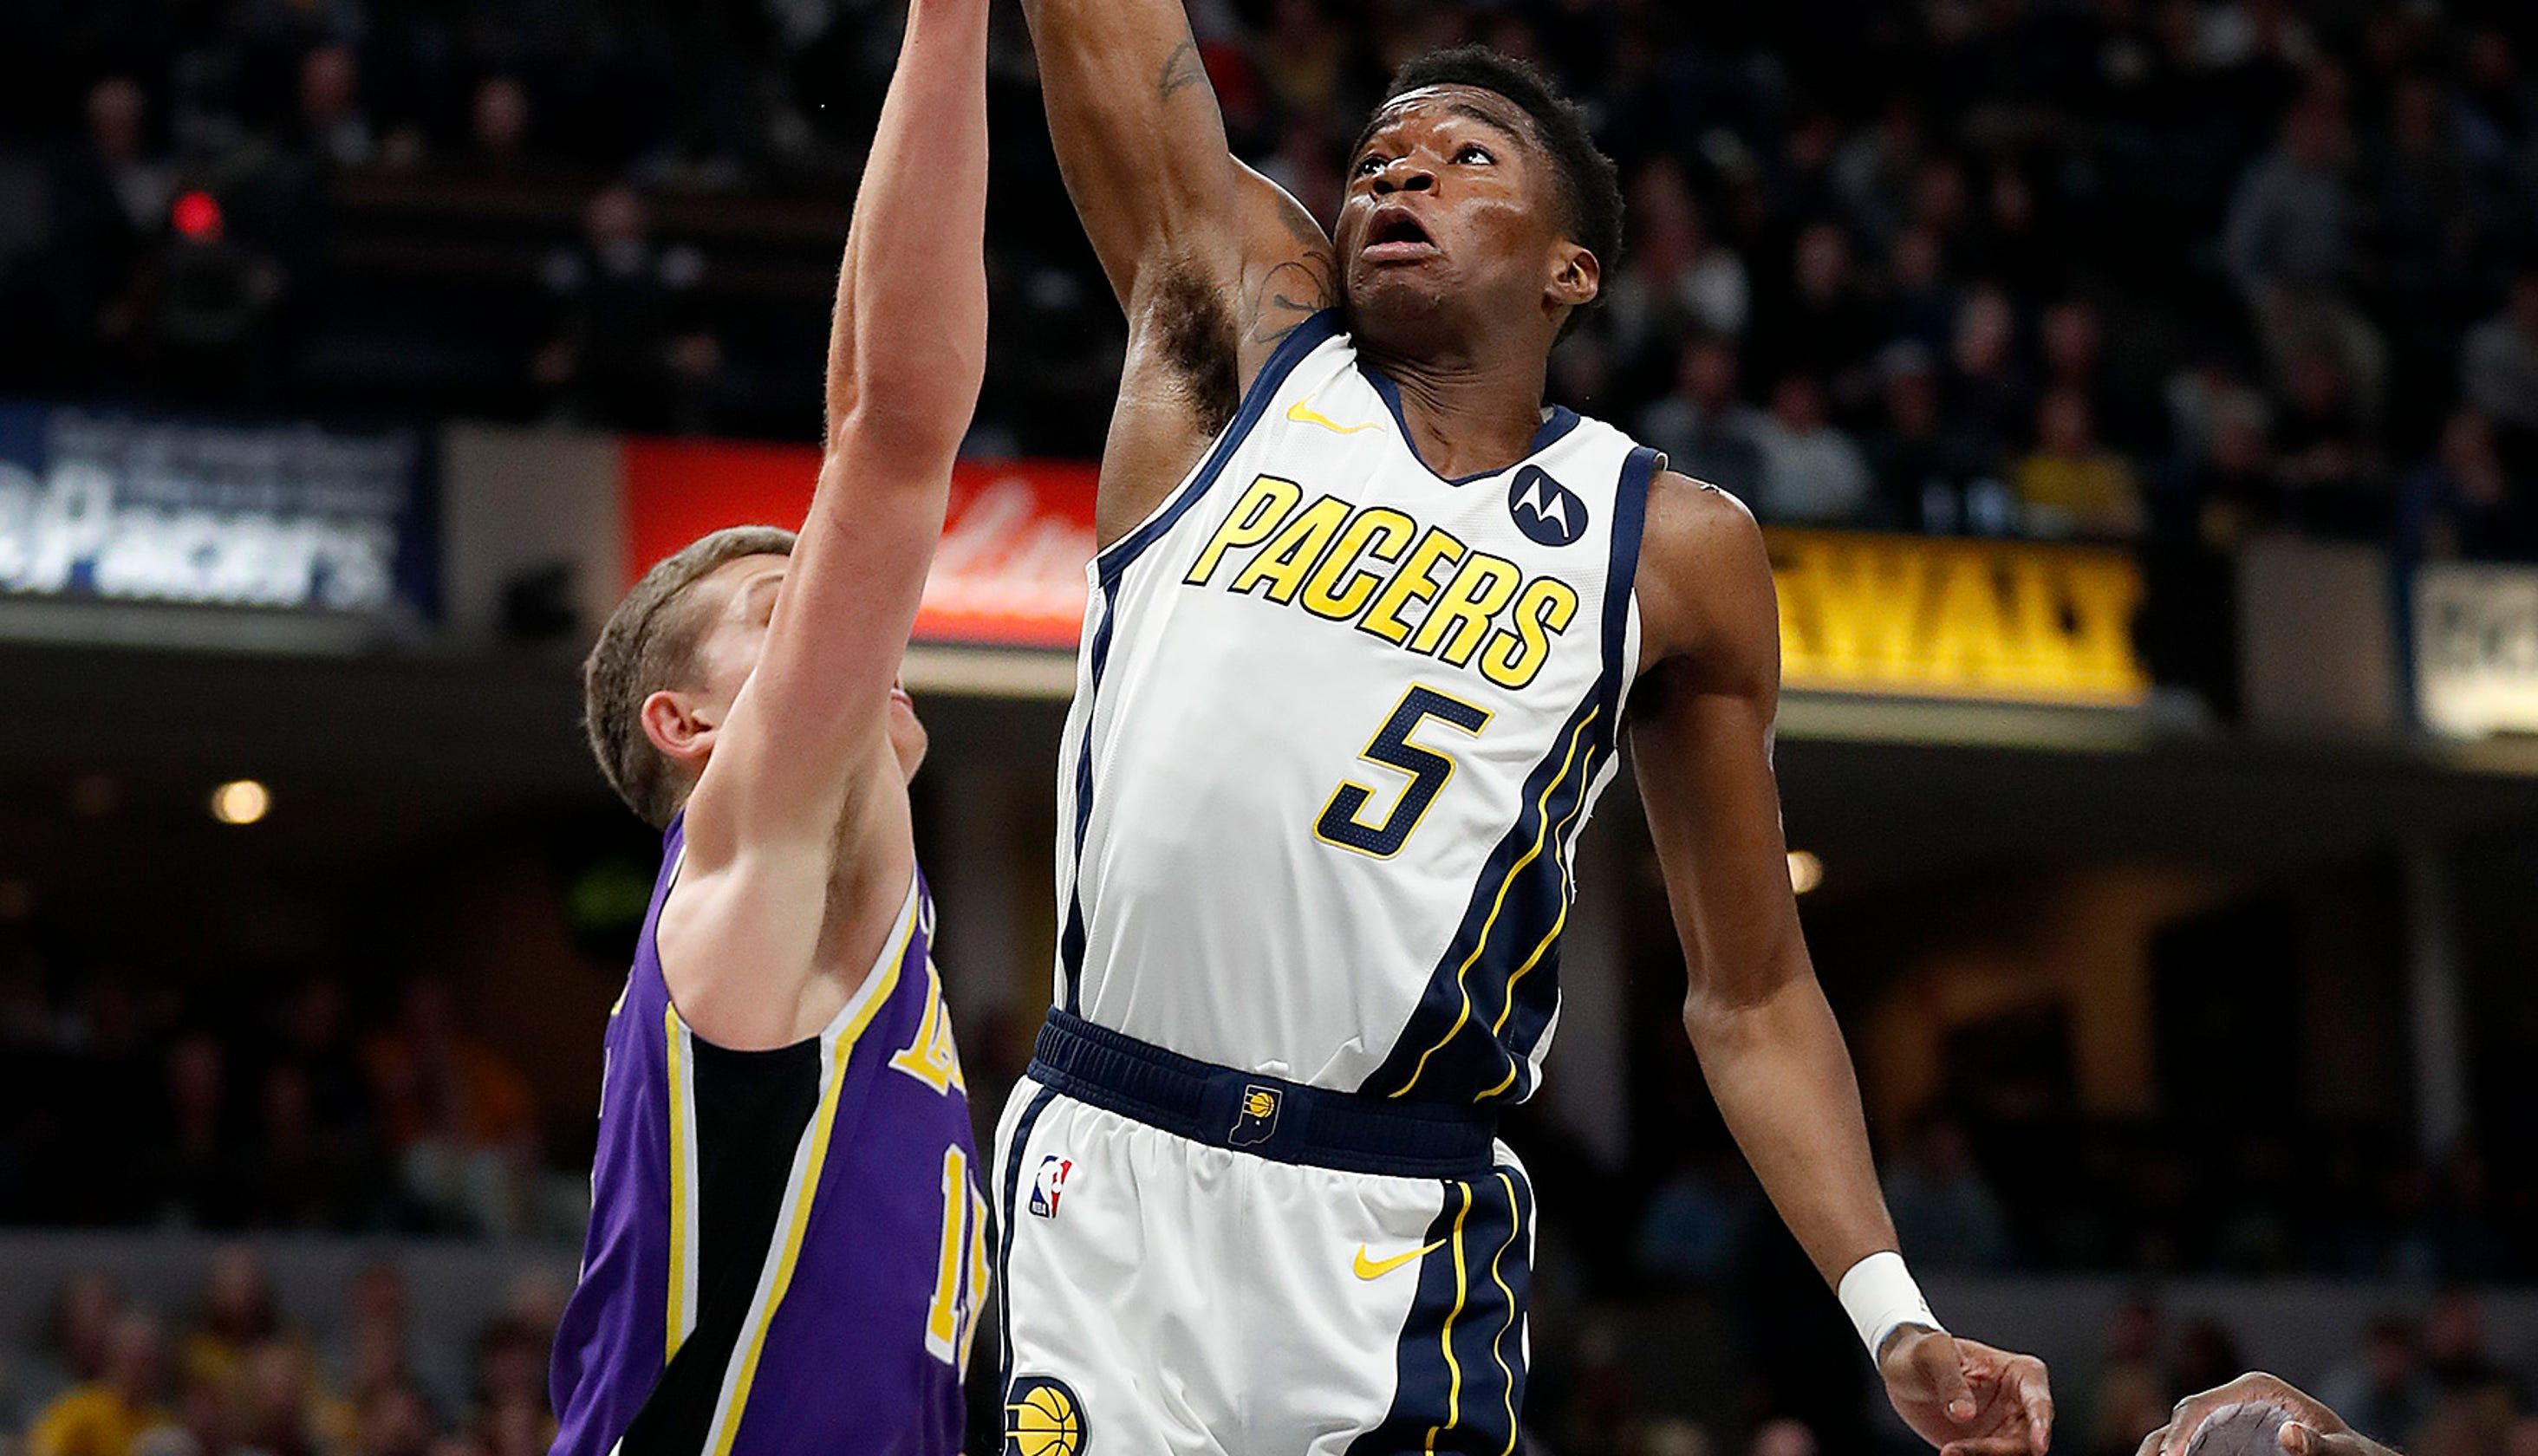 Edmond Sumner scores 17 in Indiana Pacers' rout of Los